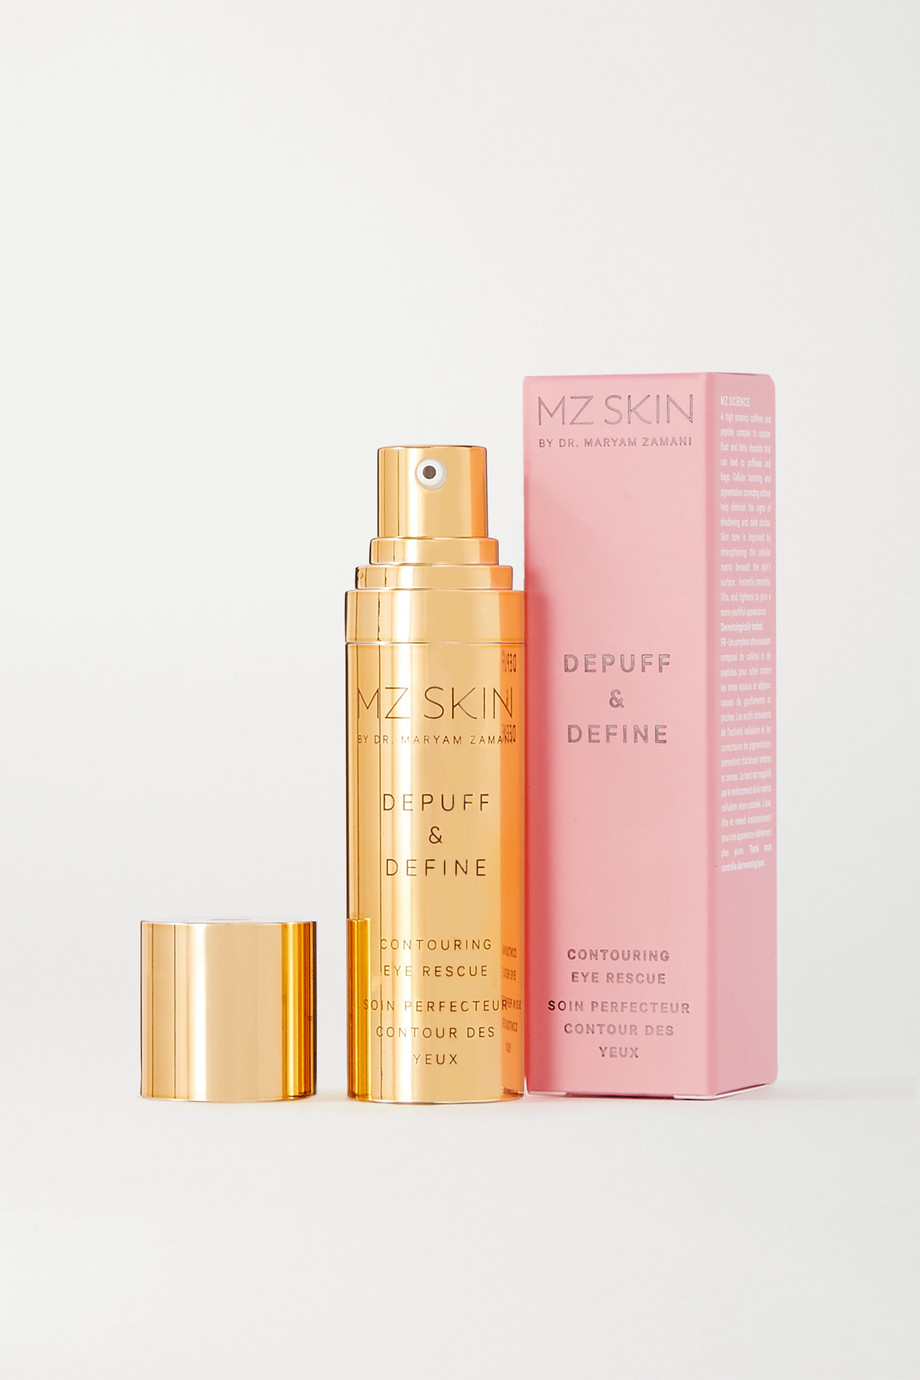 MZ SKIN Depuff & Define Contouring Eye Rescue, 15ml